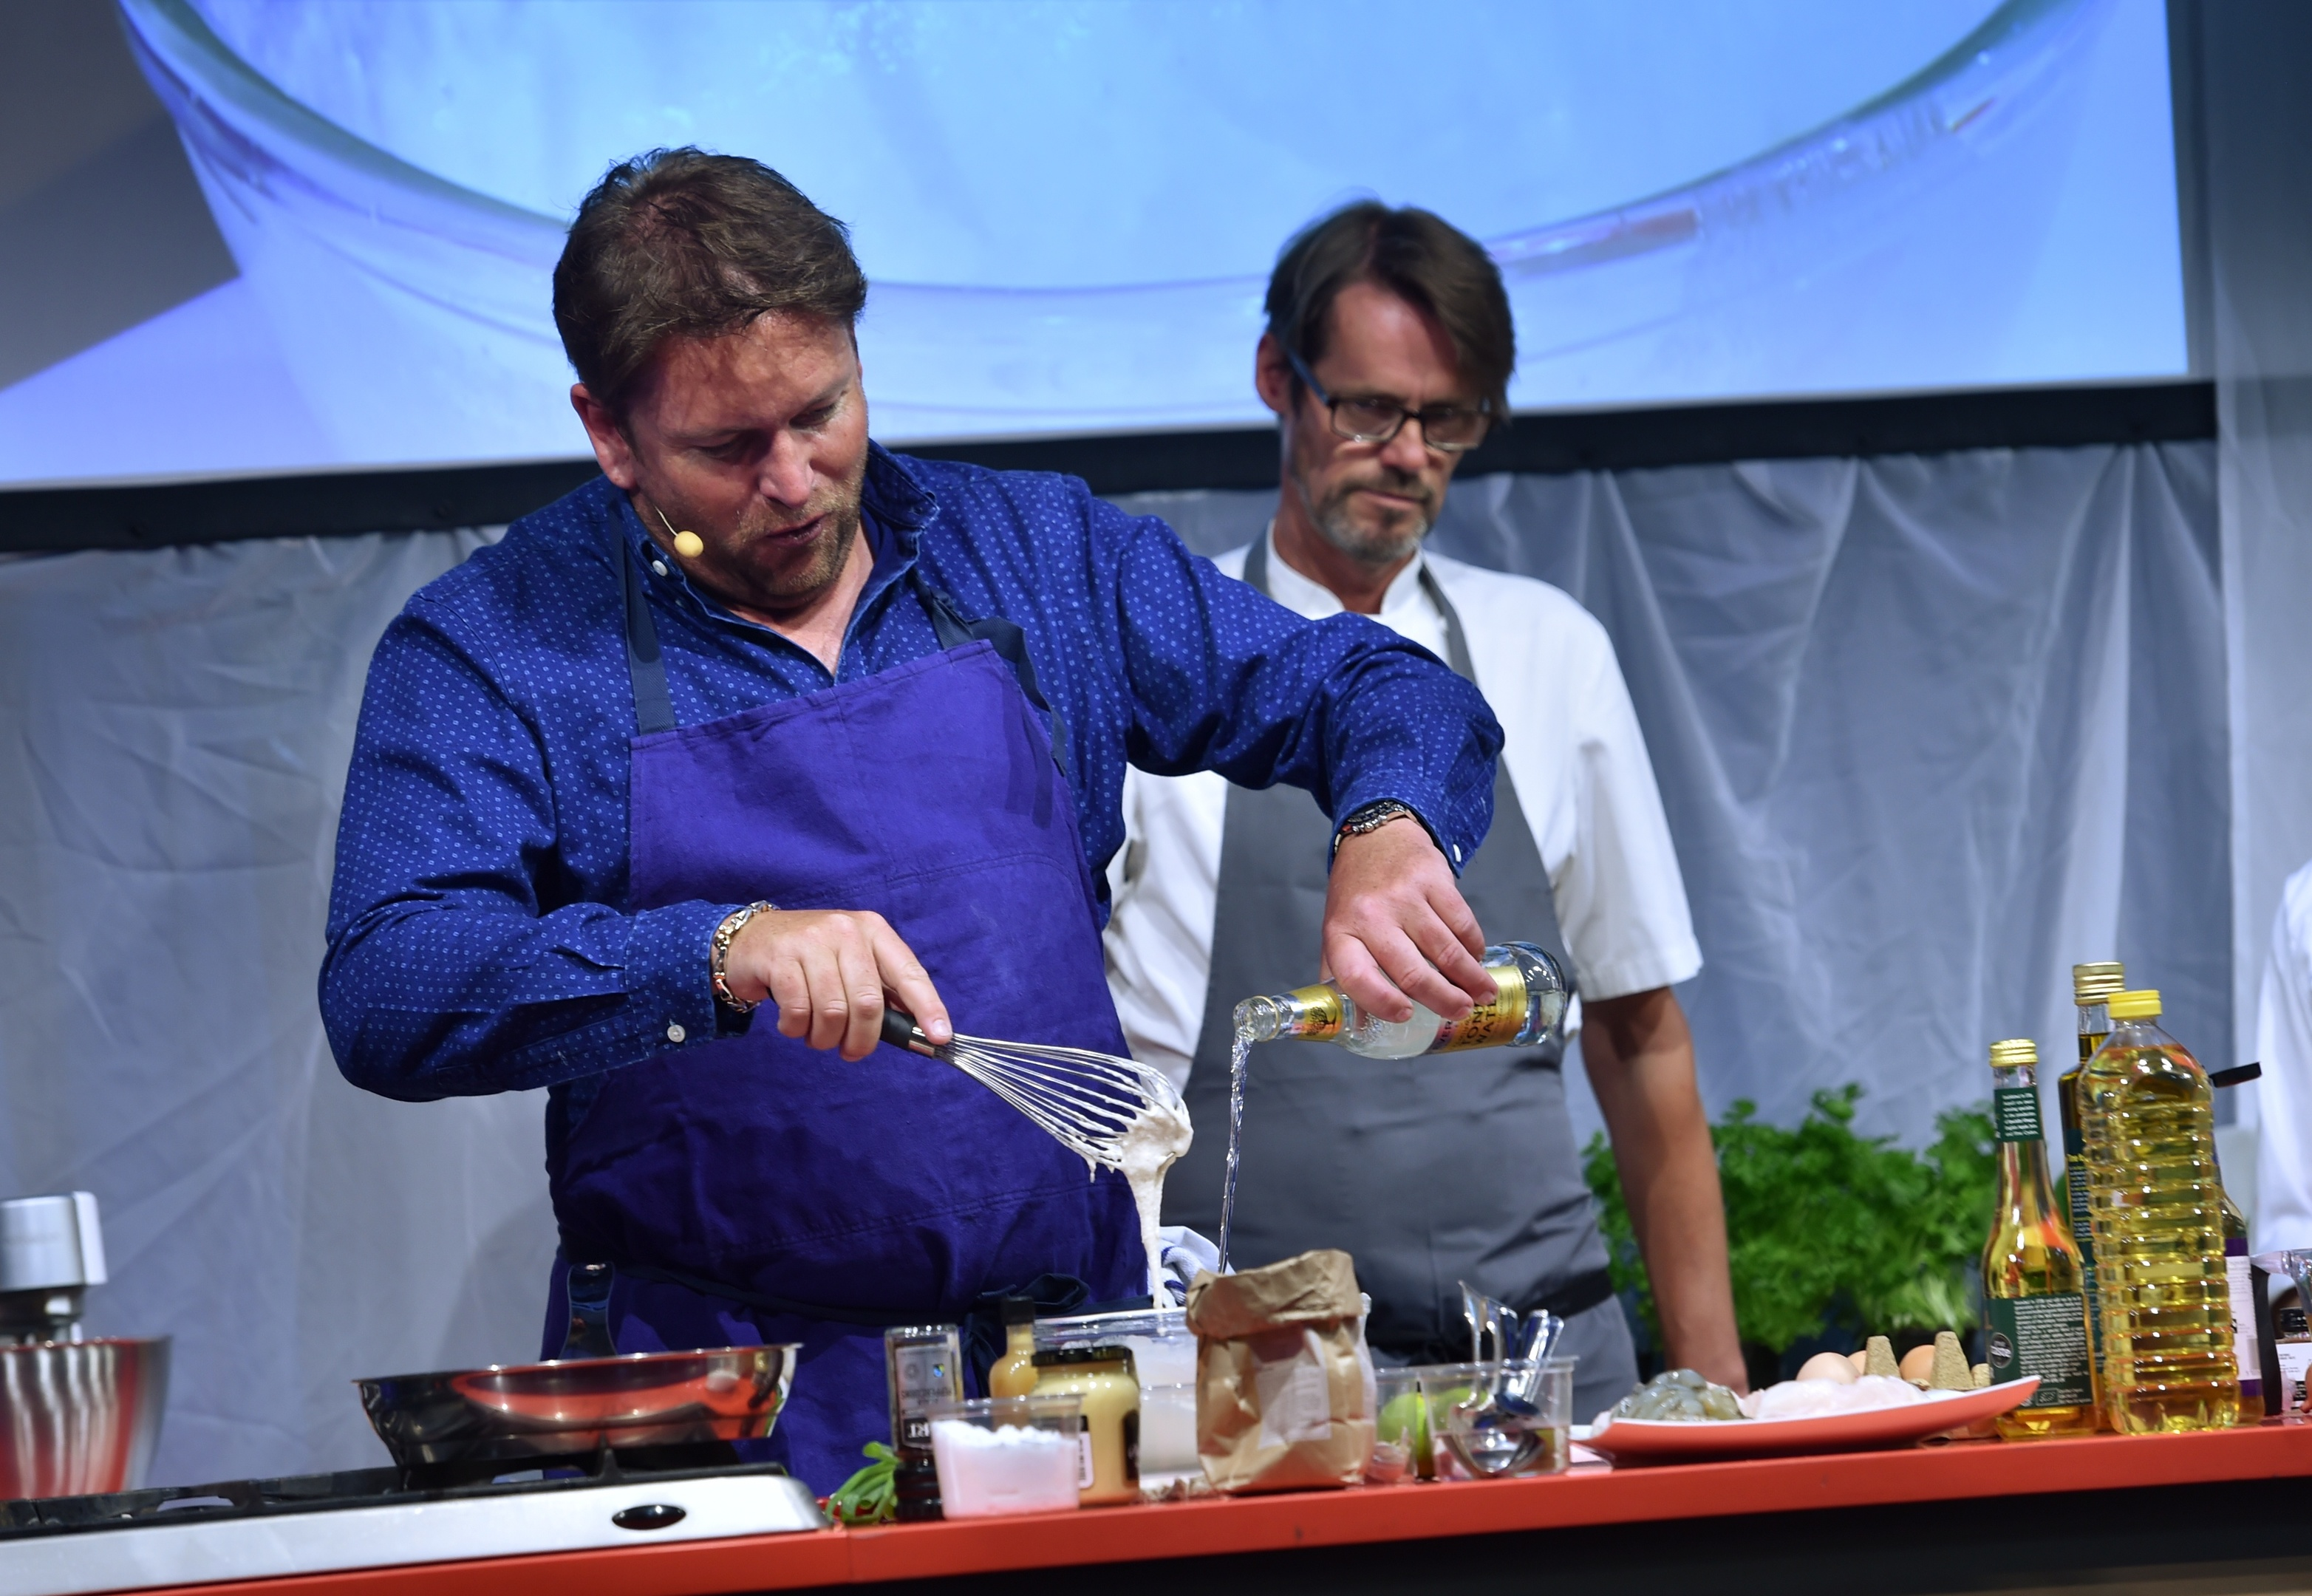 James Martin performing a cooking demonstration (Colin Rennie / DCT Media)